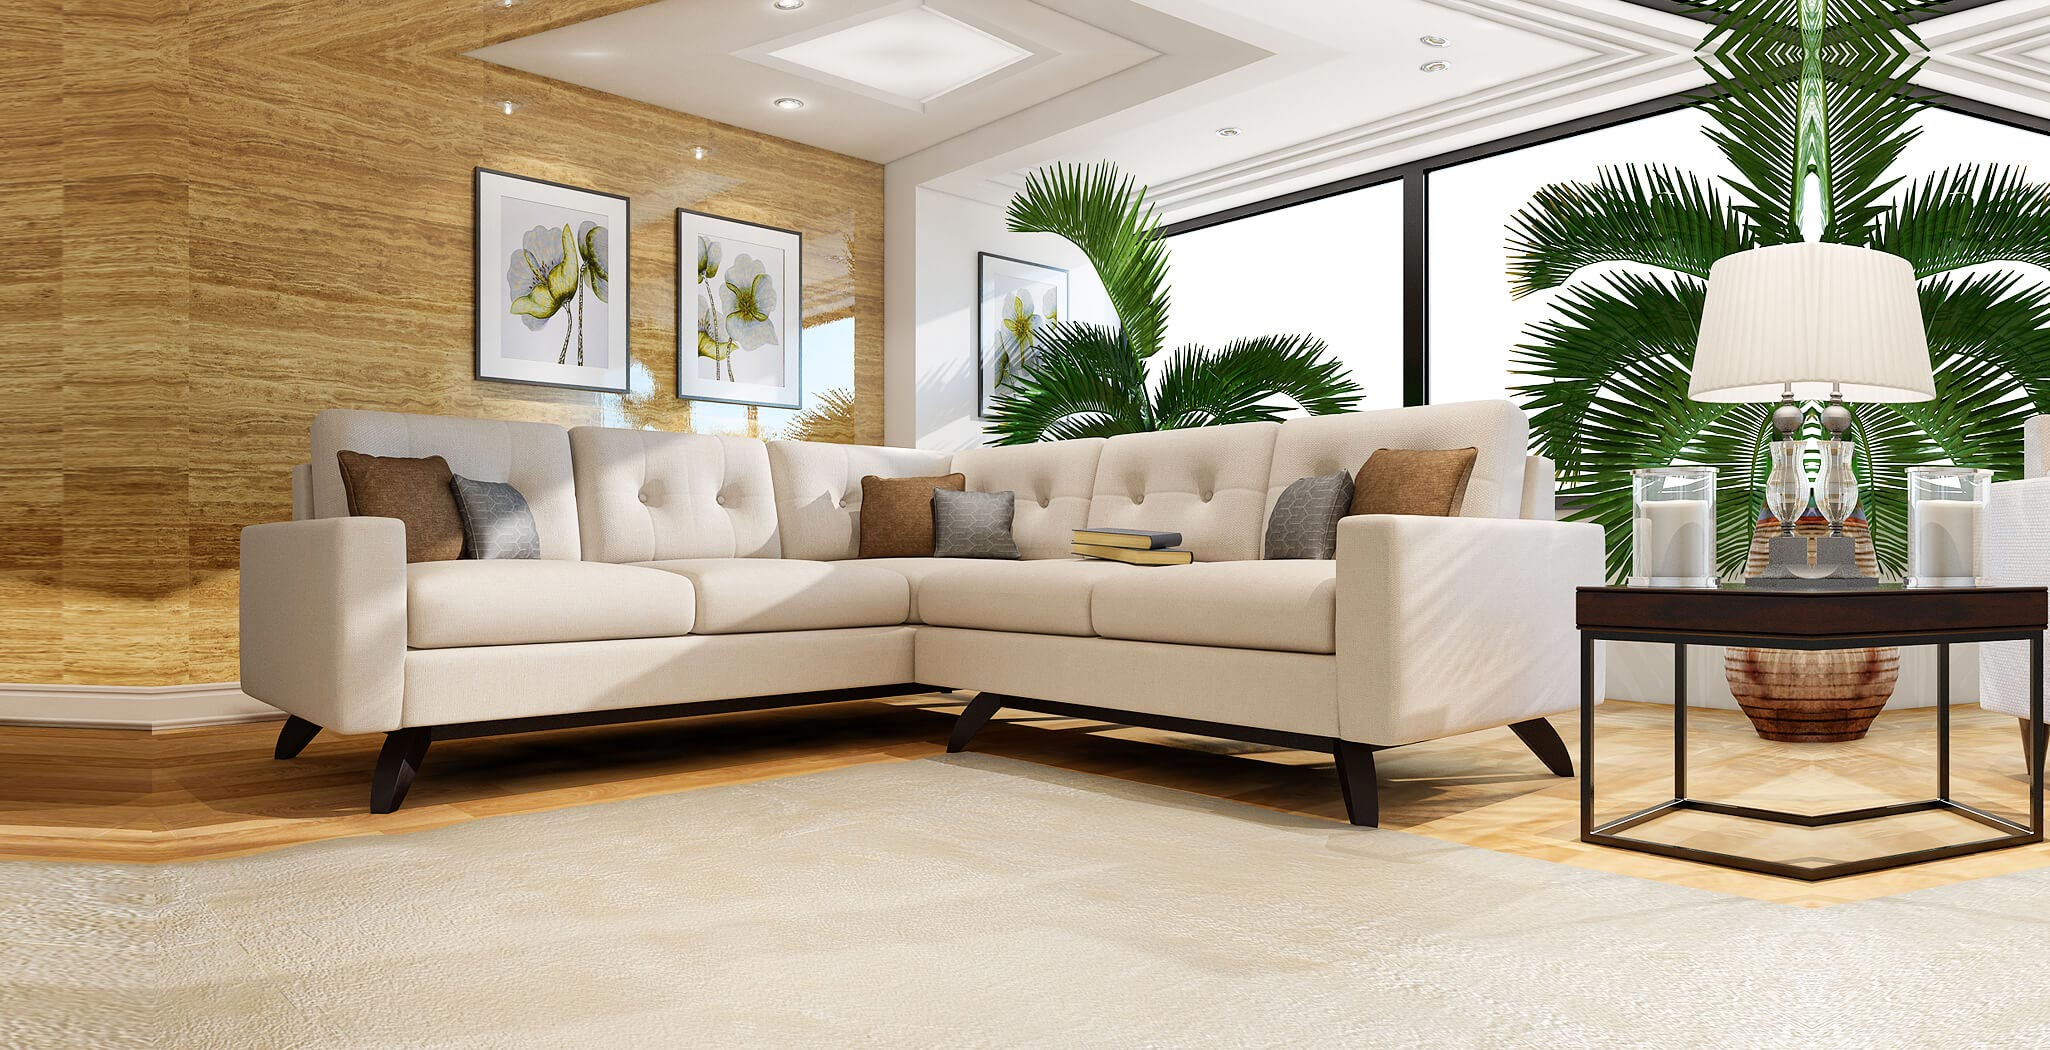 milan sectional furniture gallery 1